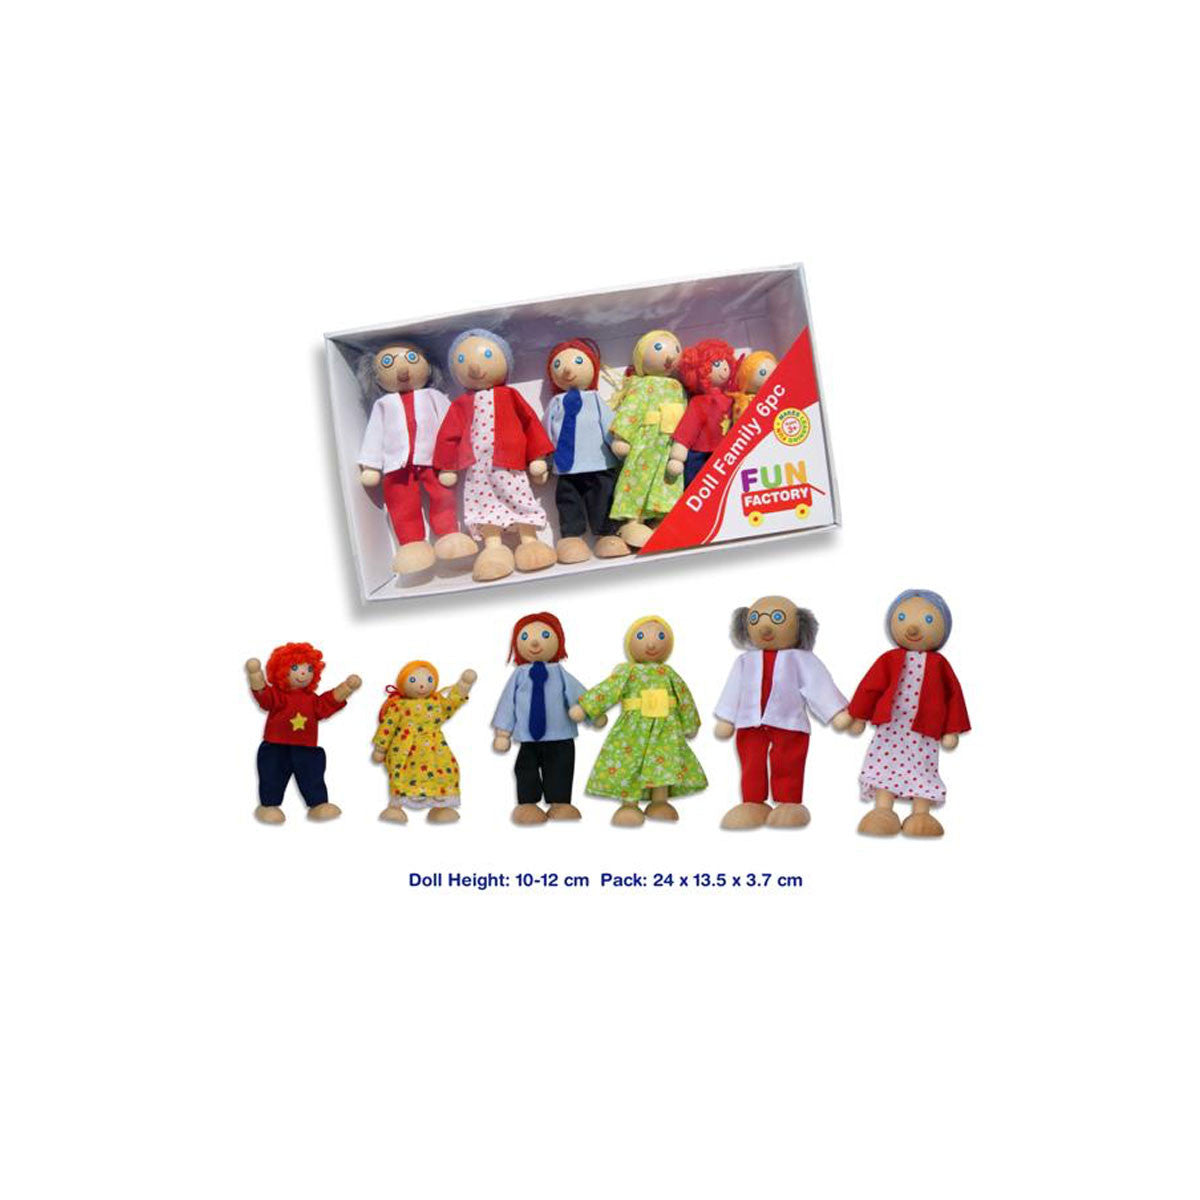 Fun Factory Wooden Doll Family Set Fun Factory Dolls, Playsets & Toy Figures at Little Earth Nest Eco Shop